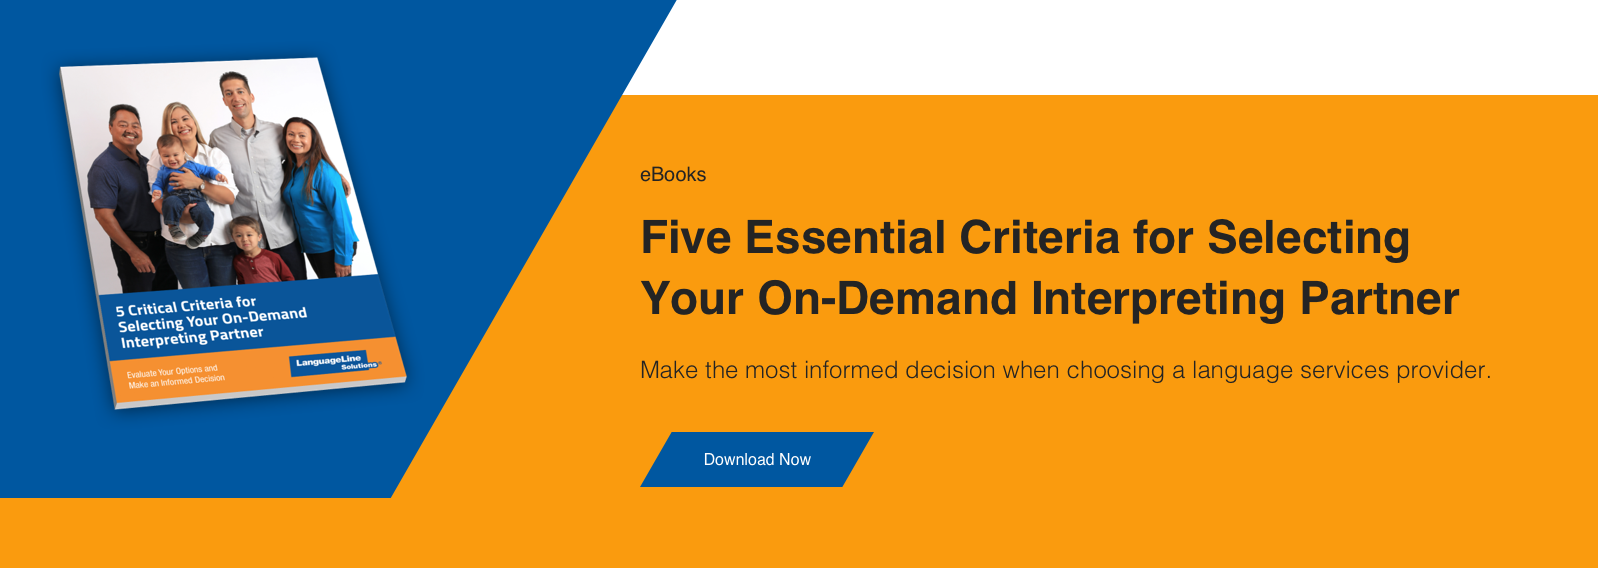 Critical Criteria for Selecting Your On-Demand Partner